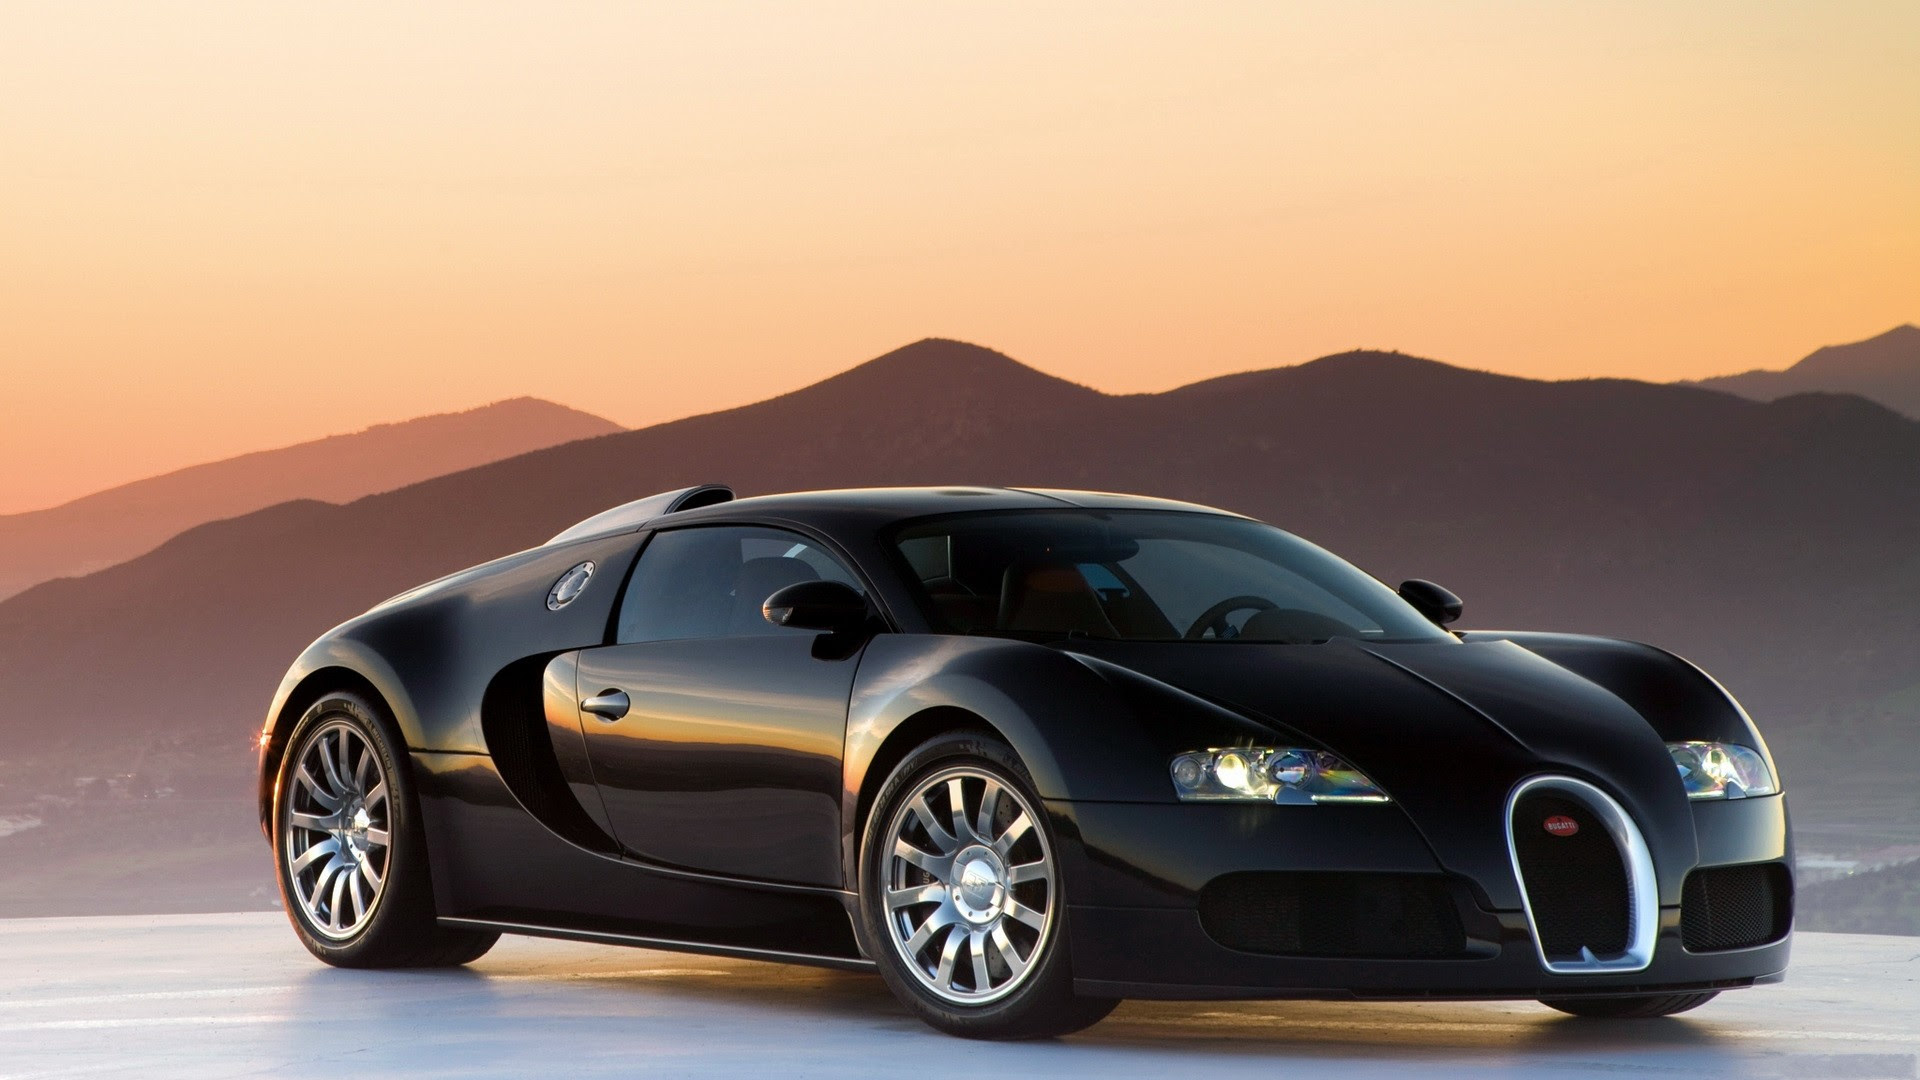 195 Bugatti Veyron HD Wallpapers   Backgrounds - Wallpaper Abyss - Page 2